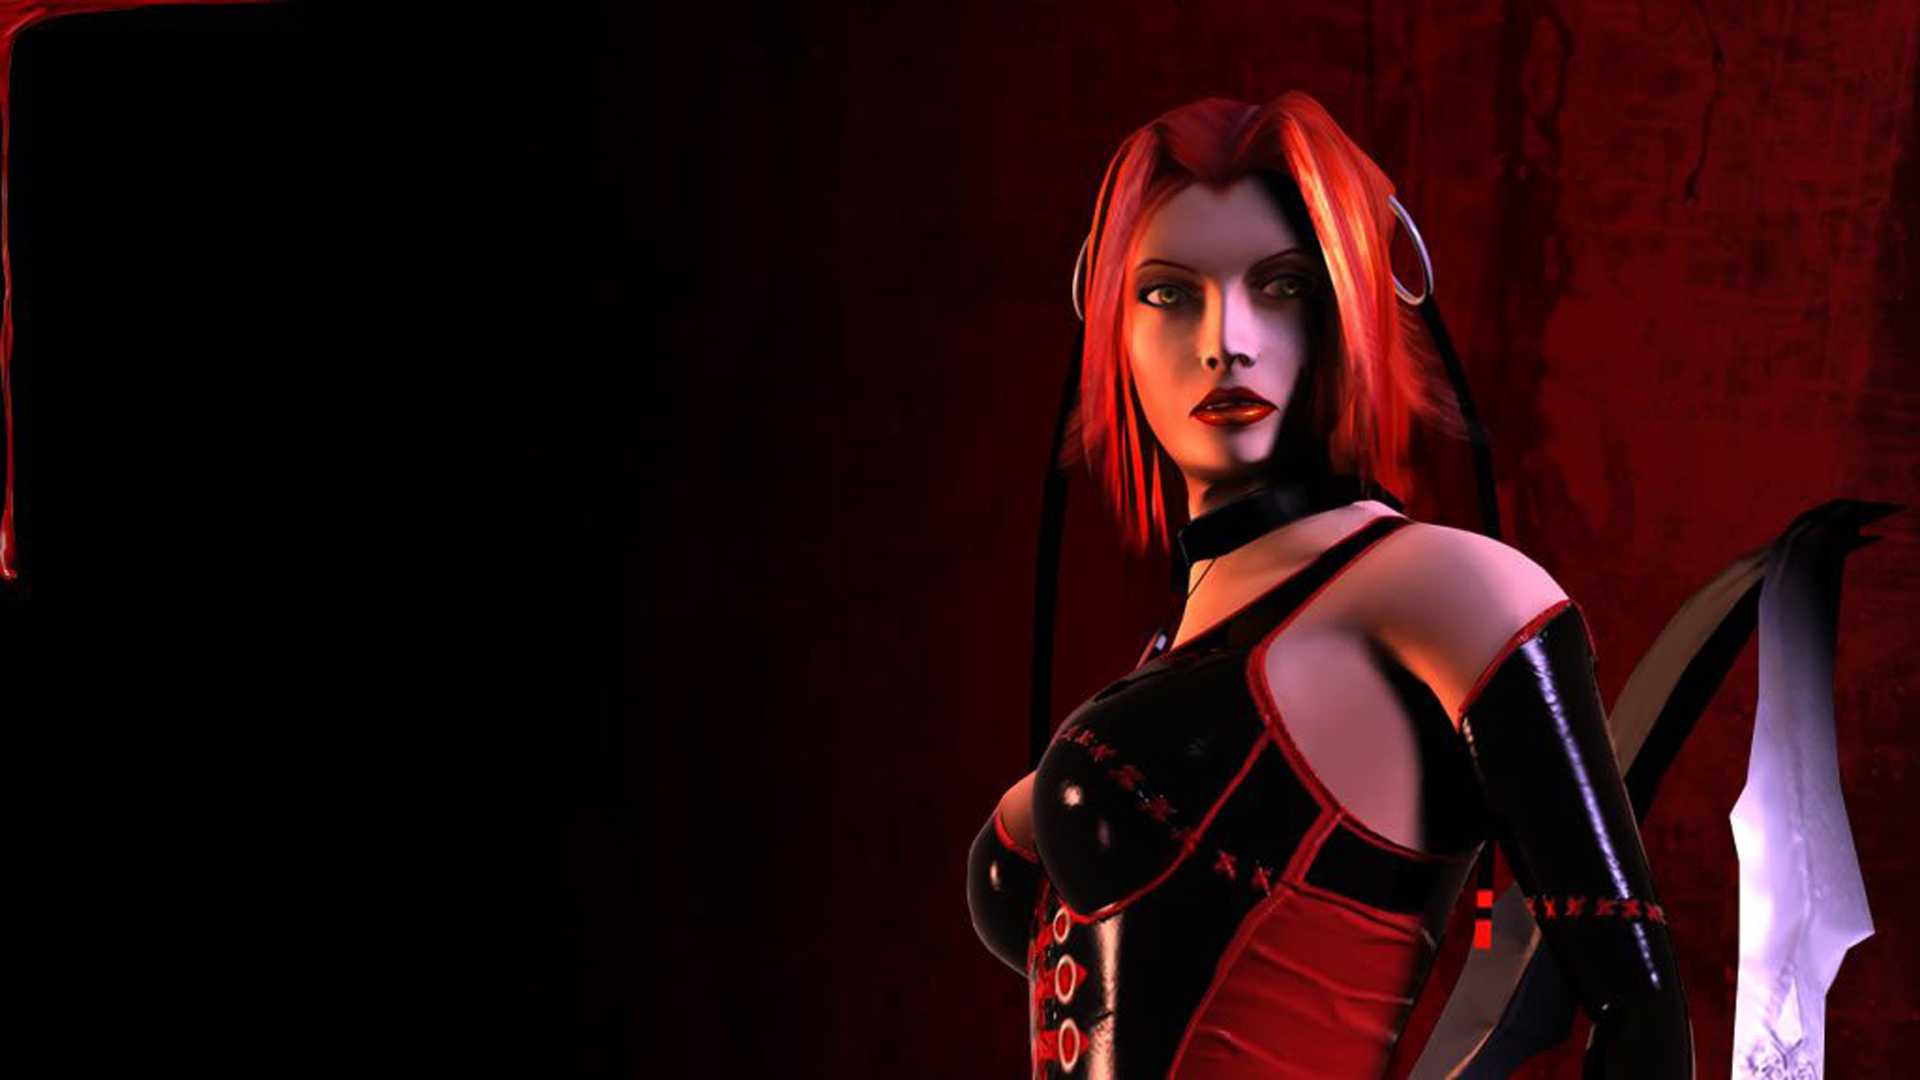 Tgdb Browse Game Bloodrayne 2